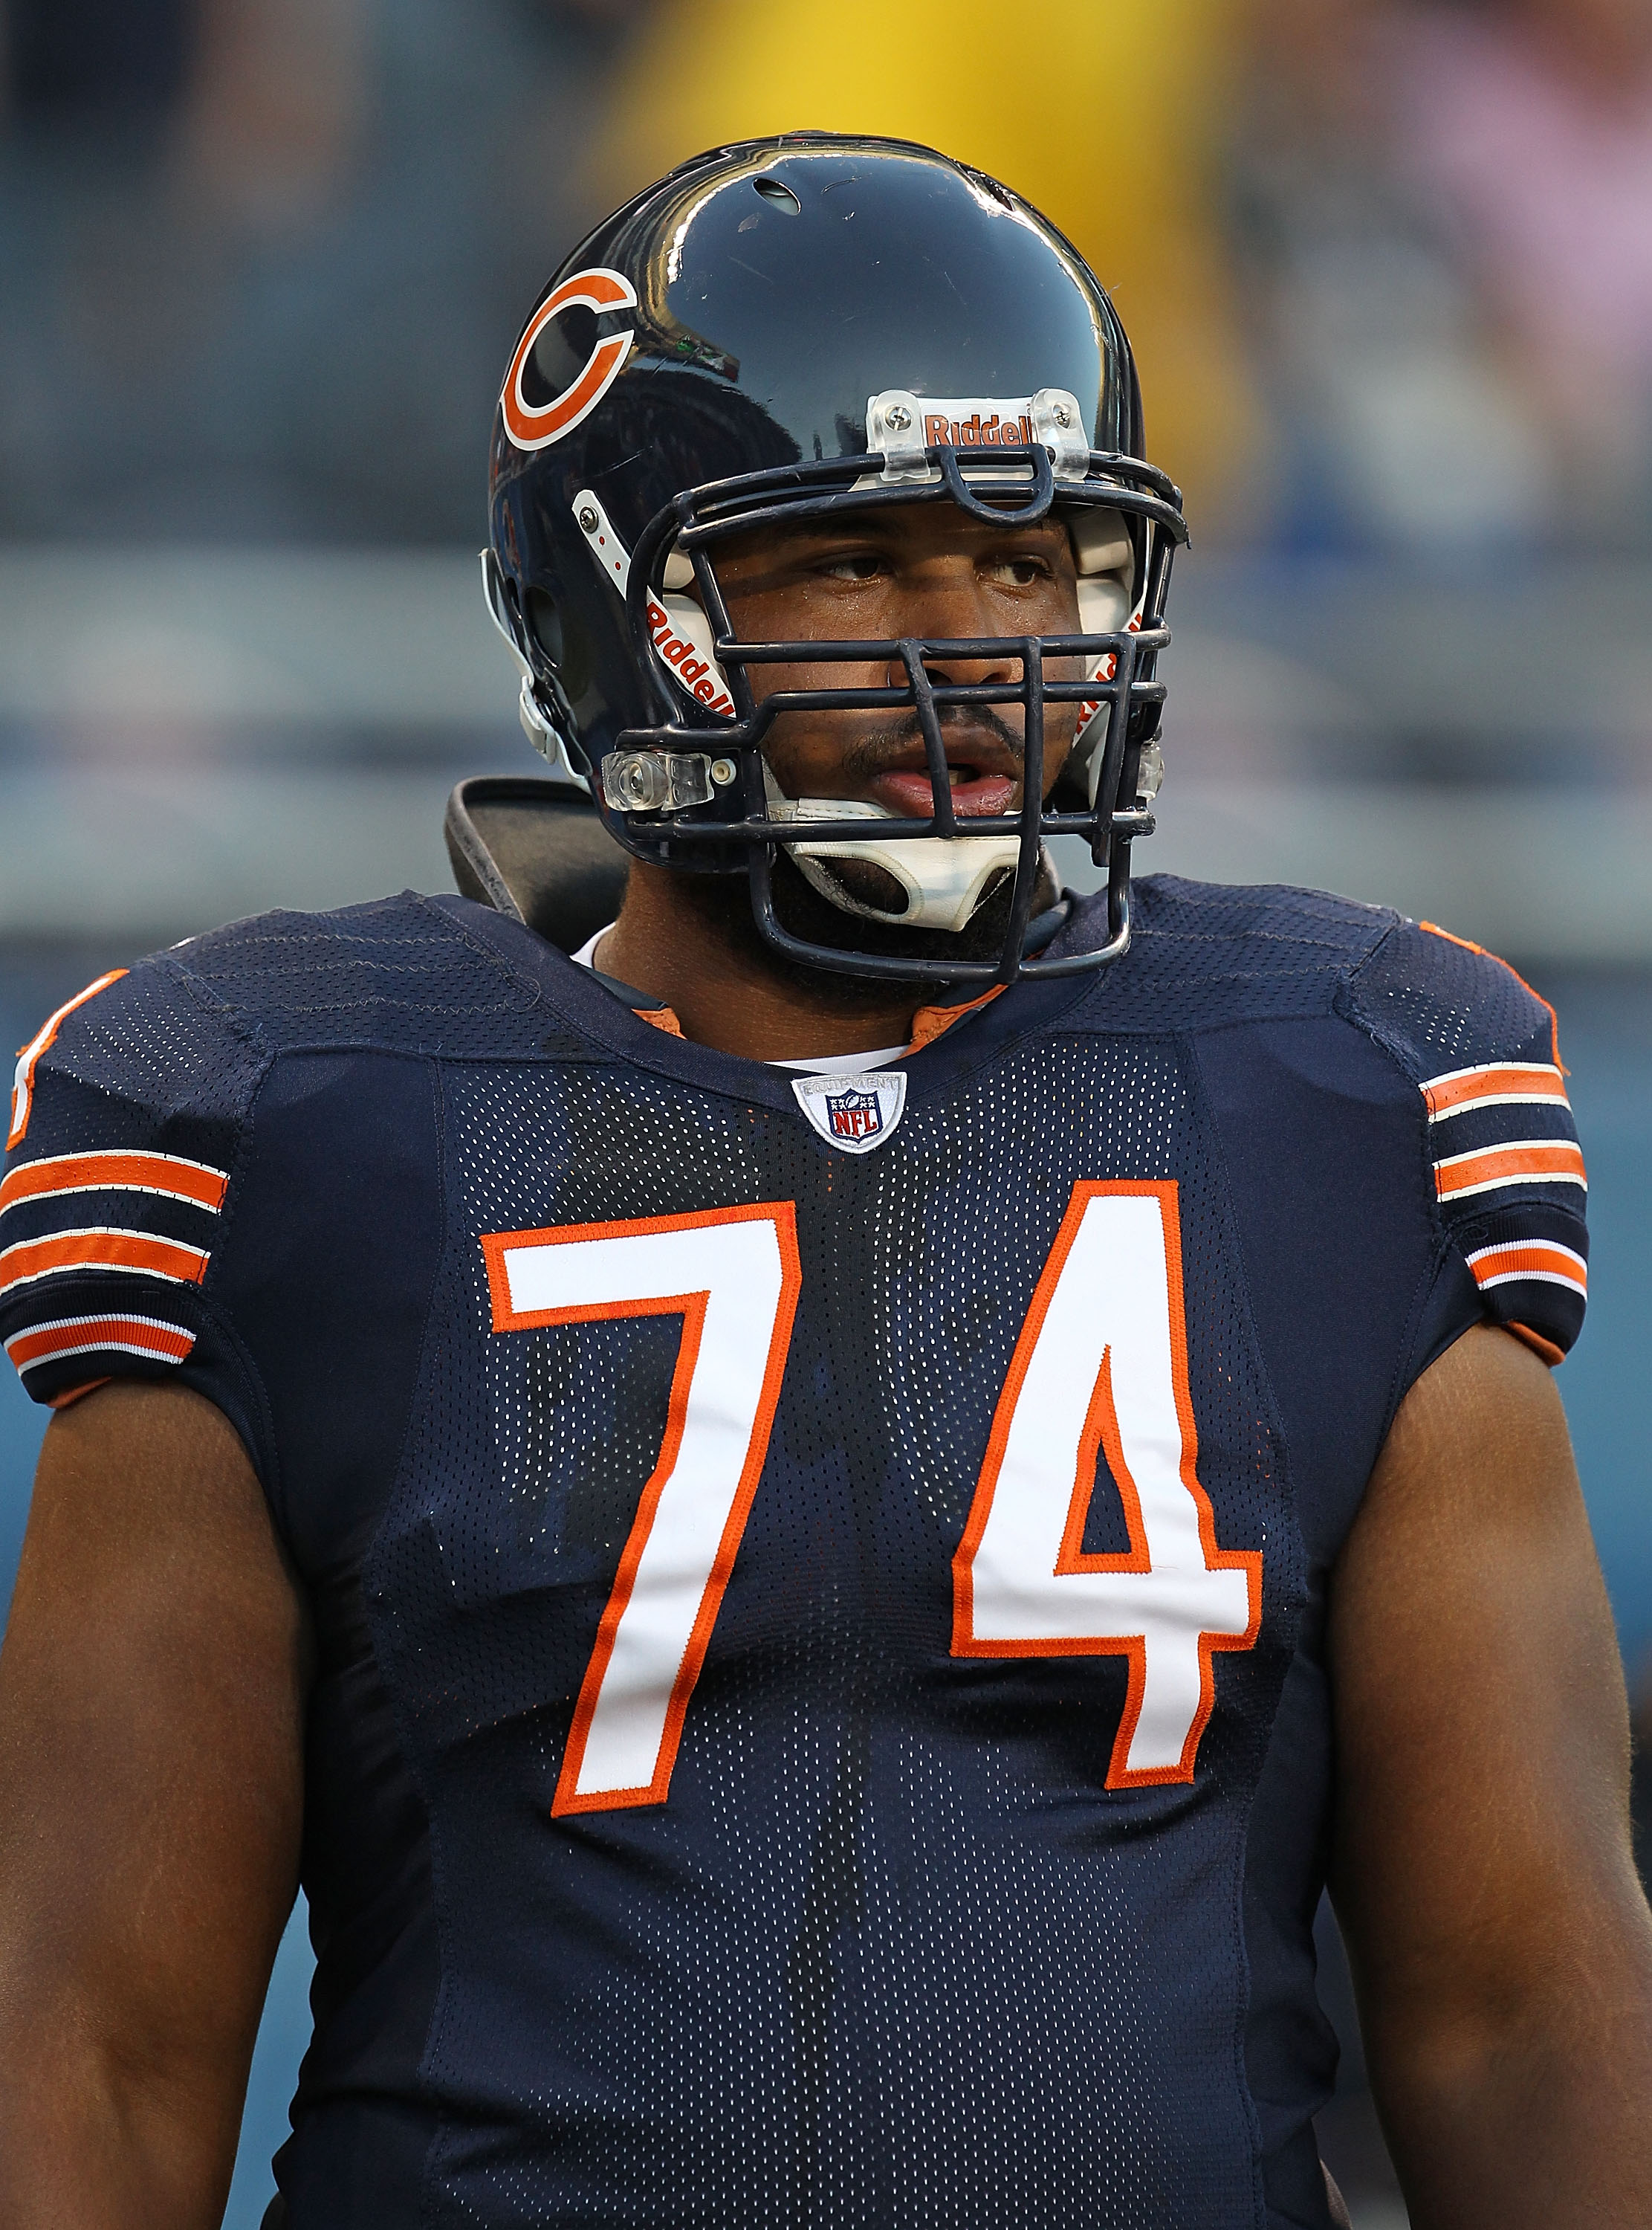 CHICAGO - AUGUST 28: Chris Williams #74 of the Chicago Bears participates in warm-ups before a preseason game against the Arizona Cardinals at Soldier Field on August 28, 2010 in Chicago, Illinois. The Cardinals defeated the Bears 14-9. (Photo by Jonathan